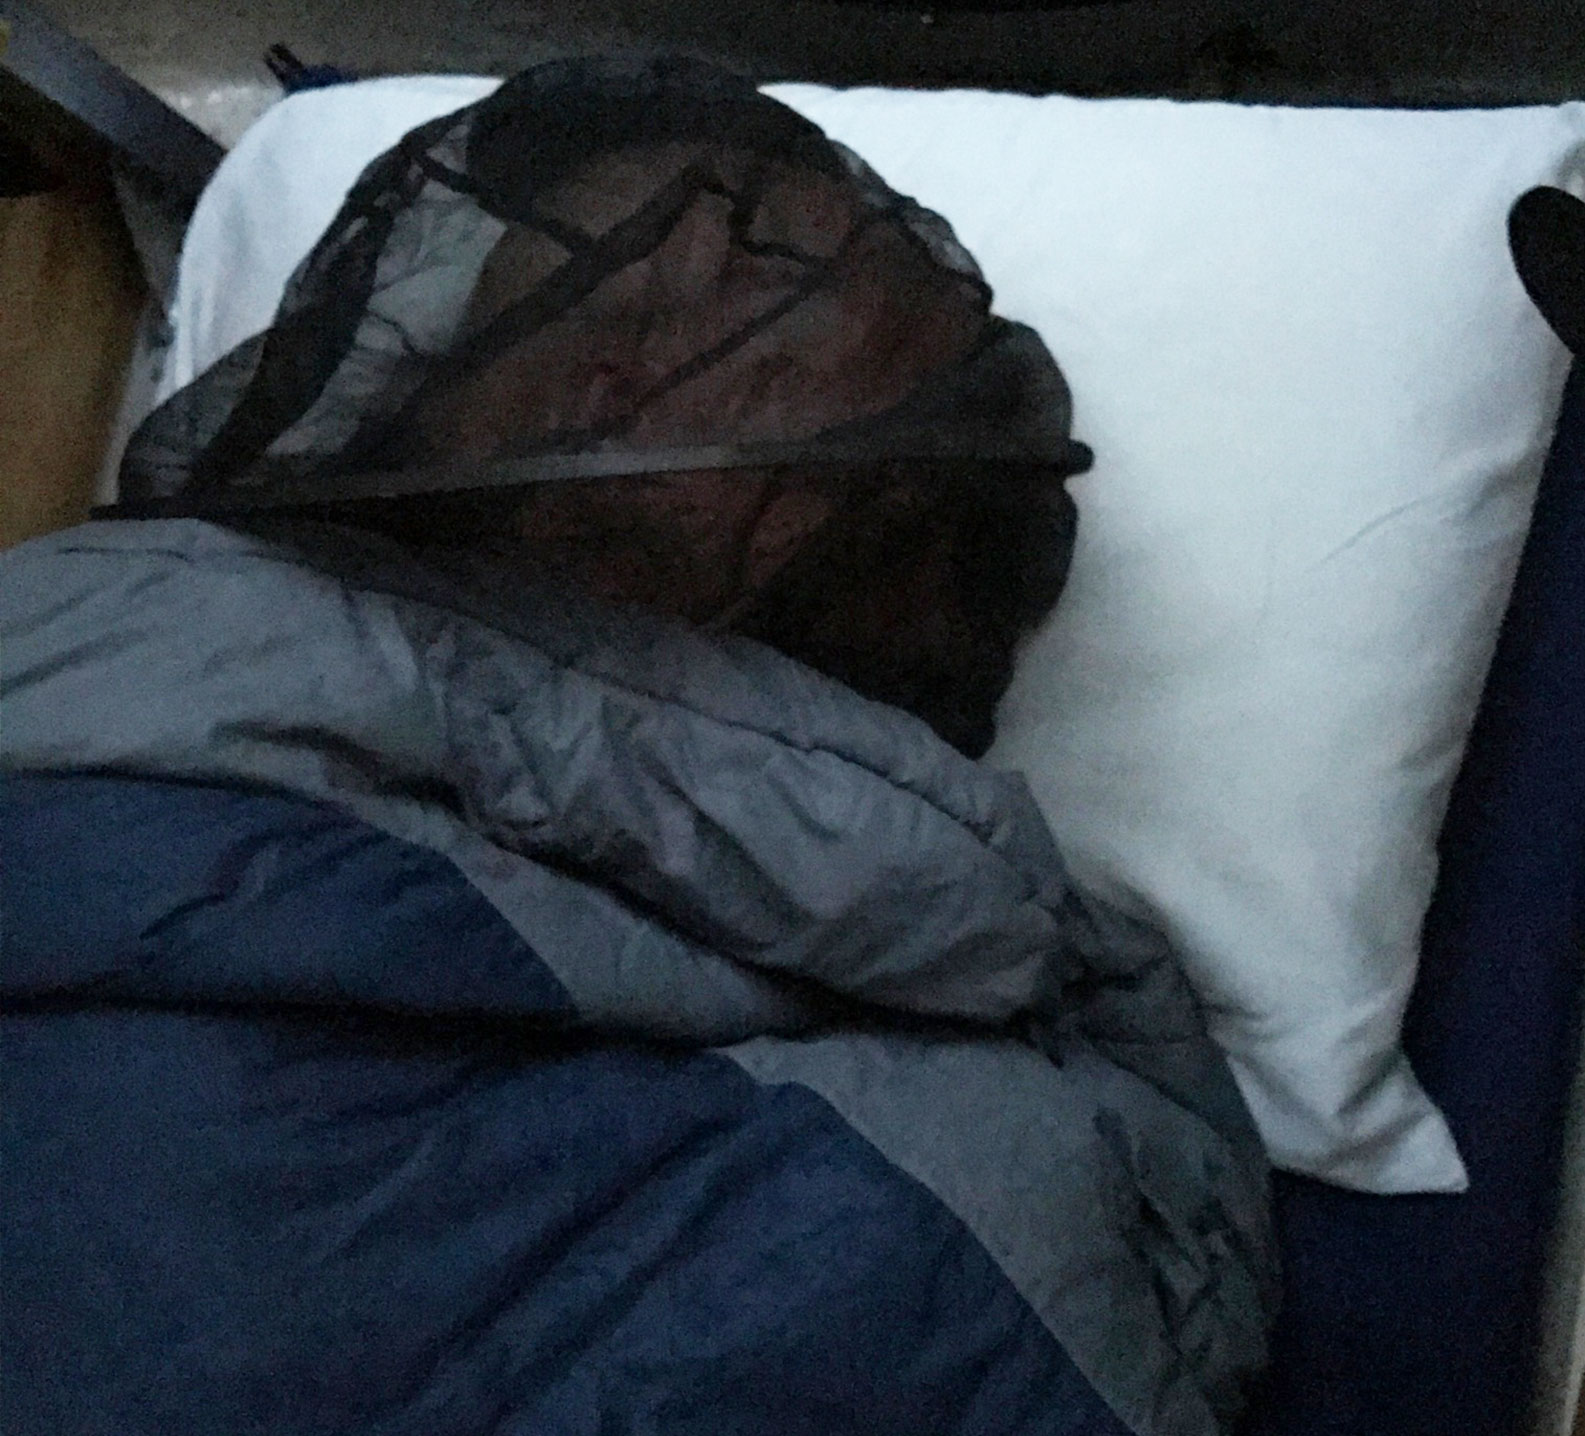 Marc Phelps sleeping with a net on his head due to mosquitos